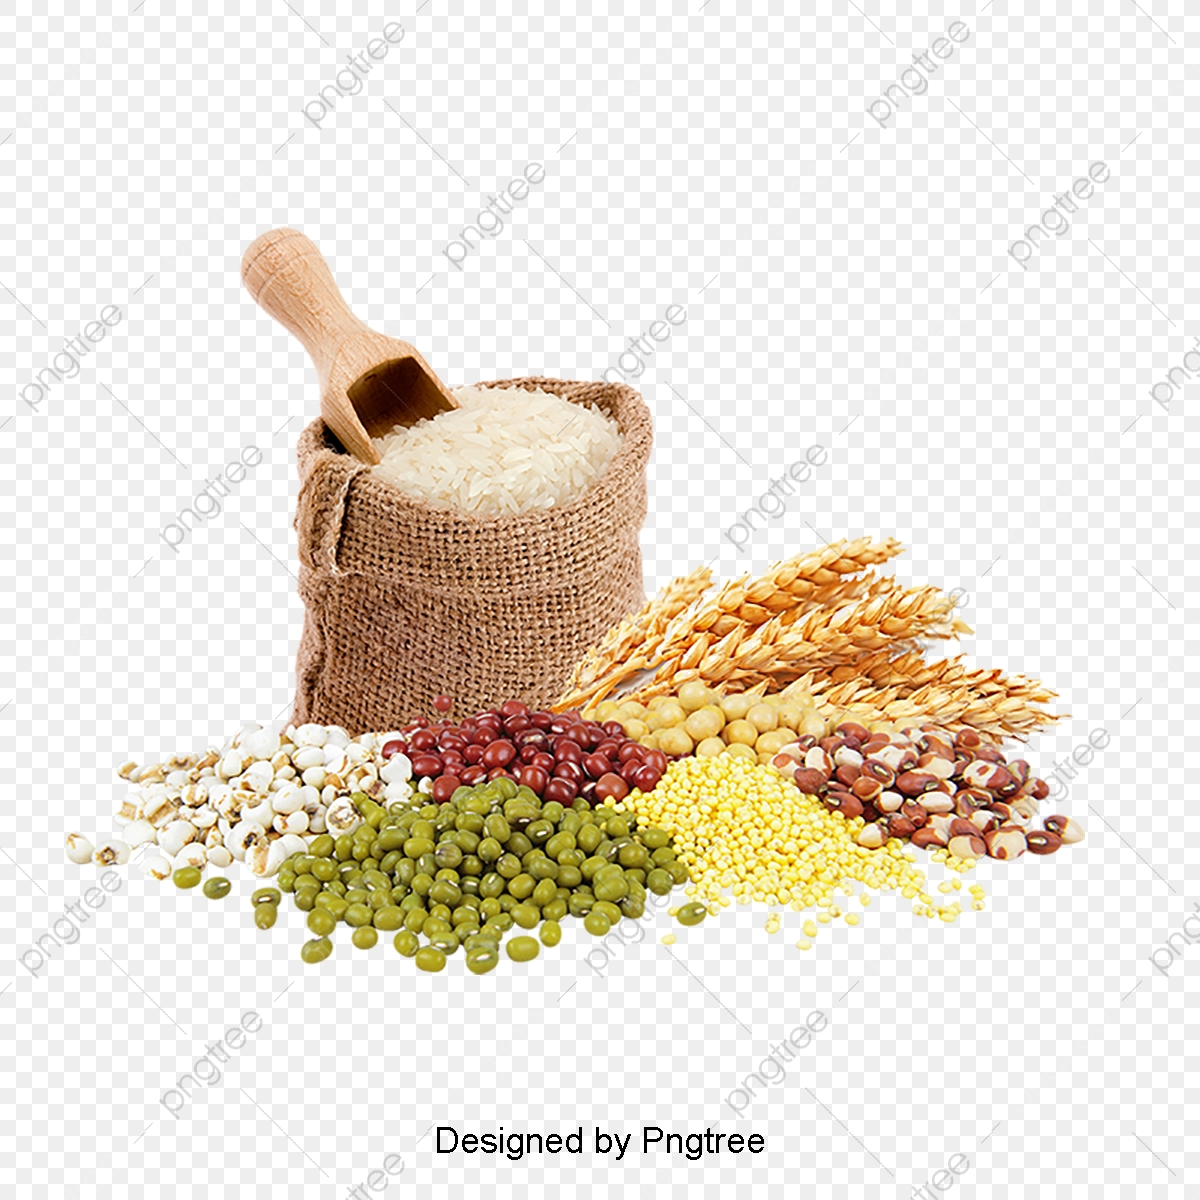 Wheat Flour Stock Image, Wheat Clipart, Dining, Wheat PNG.